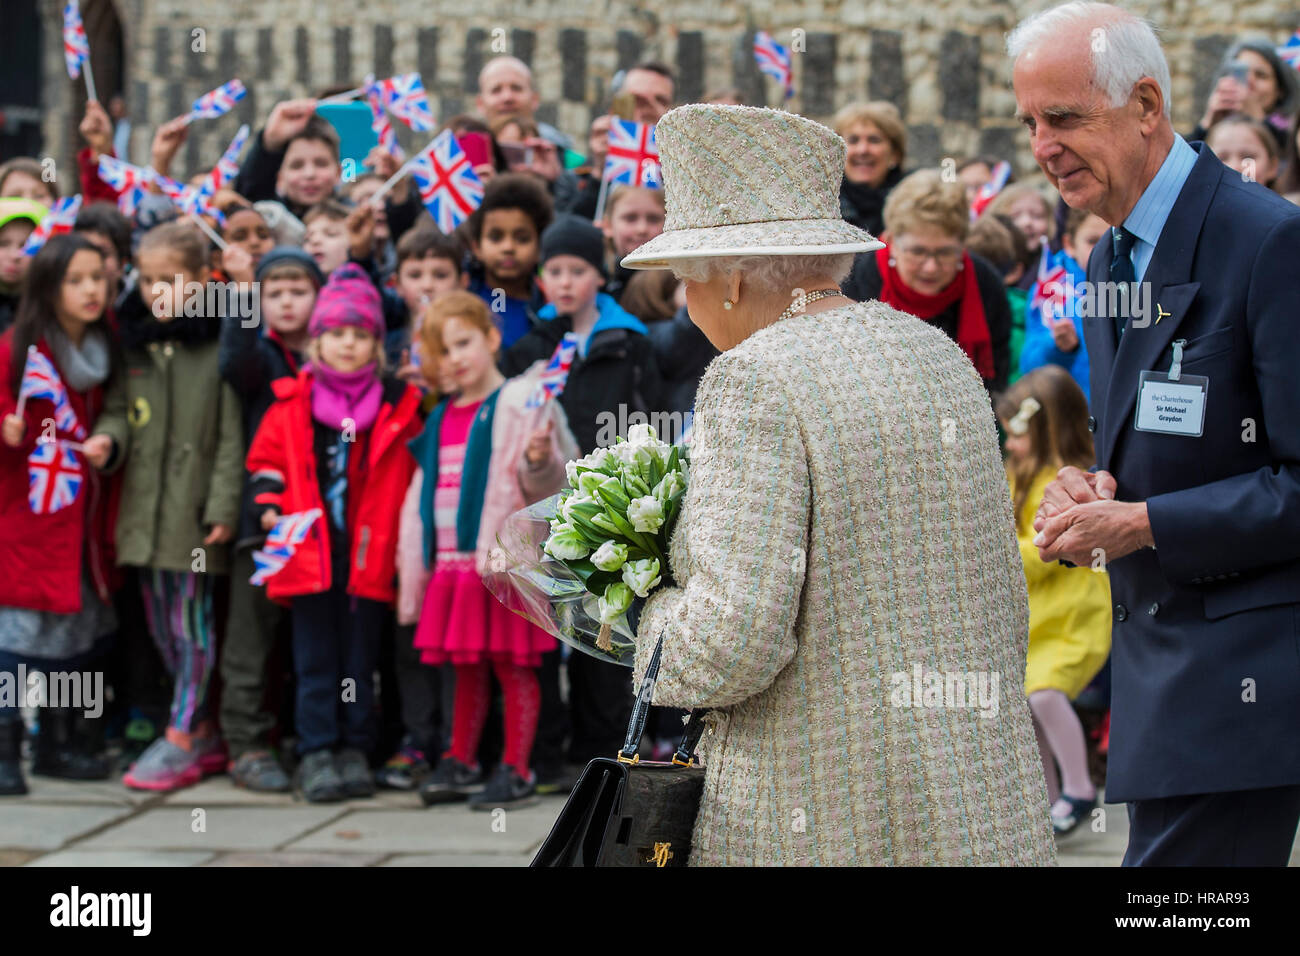 London, UK. 28th Feb, 2017. The Queen is escorted by Sir Michael Graydon - The Queen, accompanied by The Duke of - Stock Image